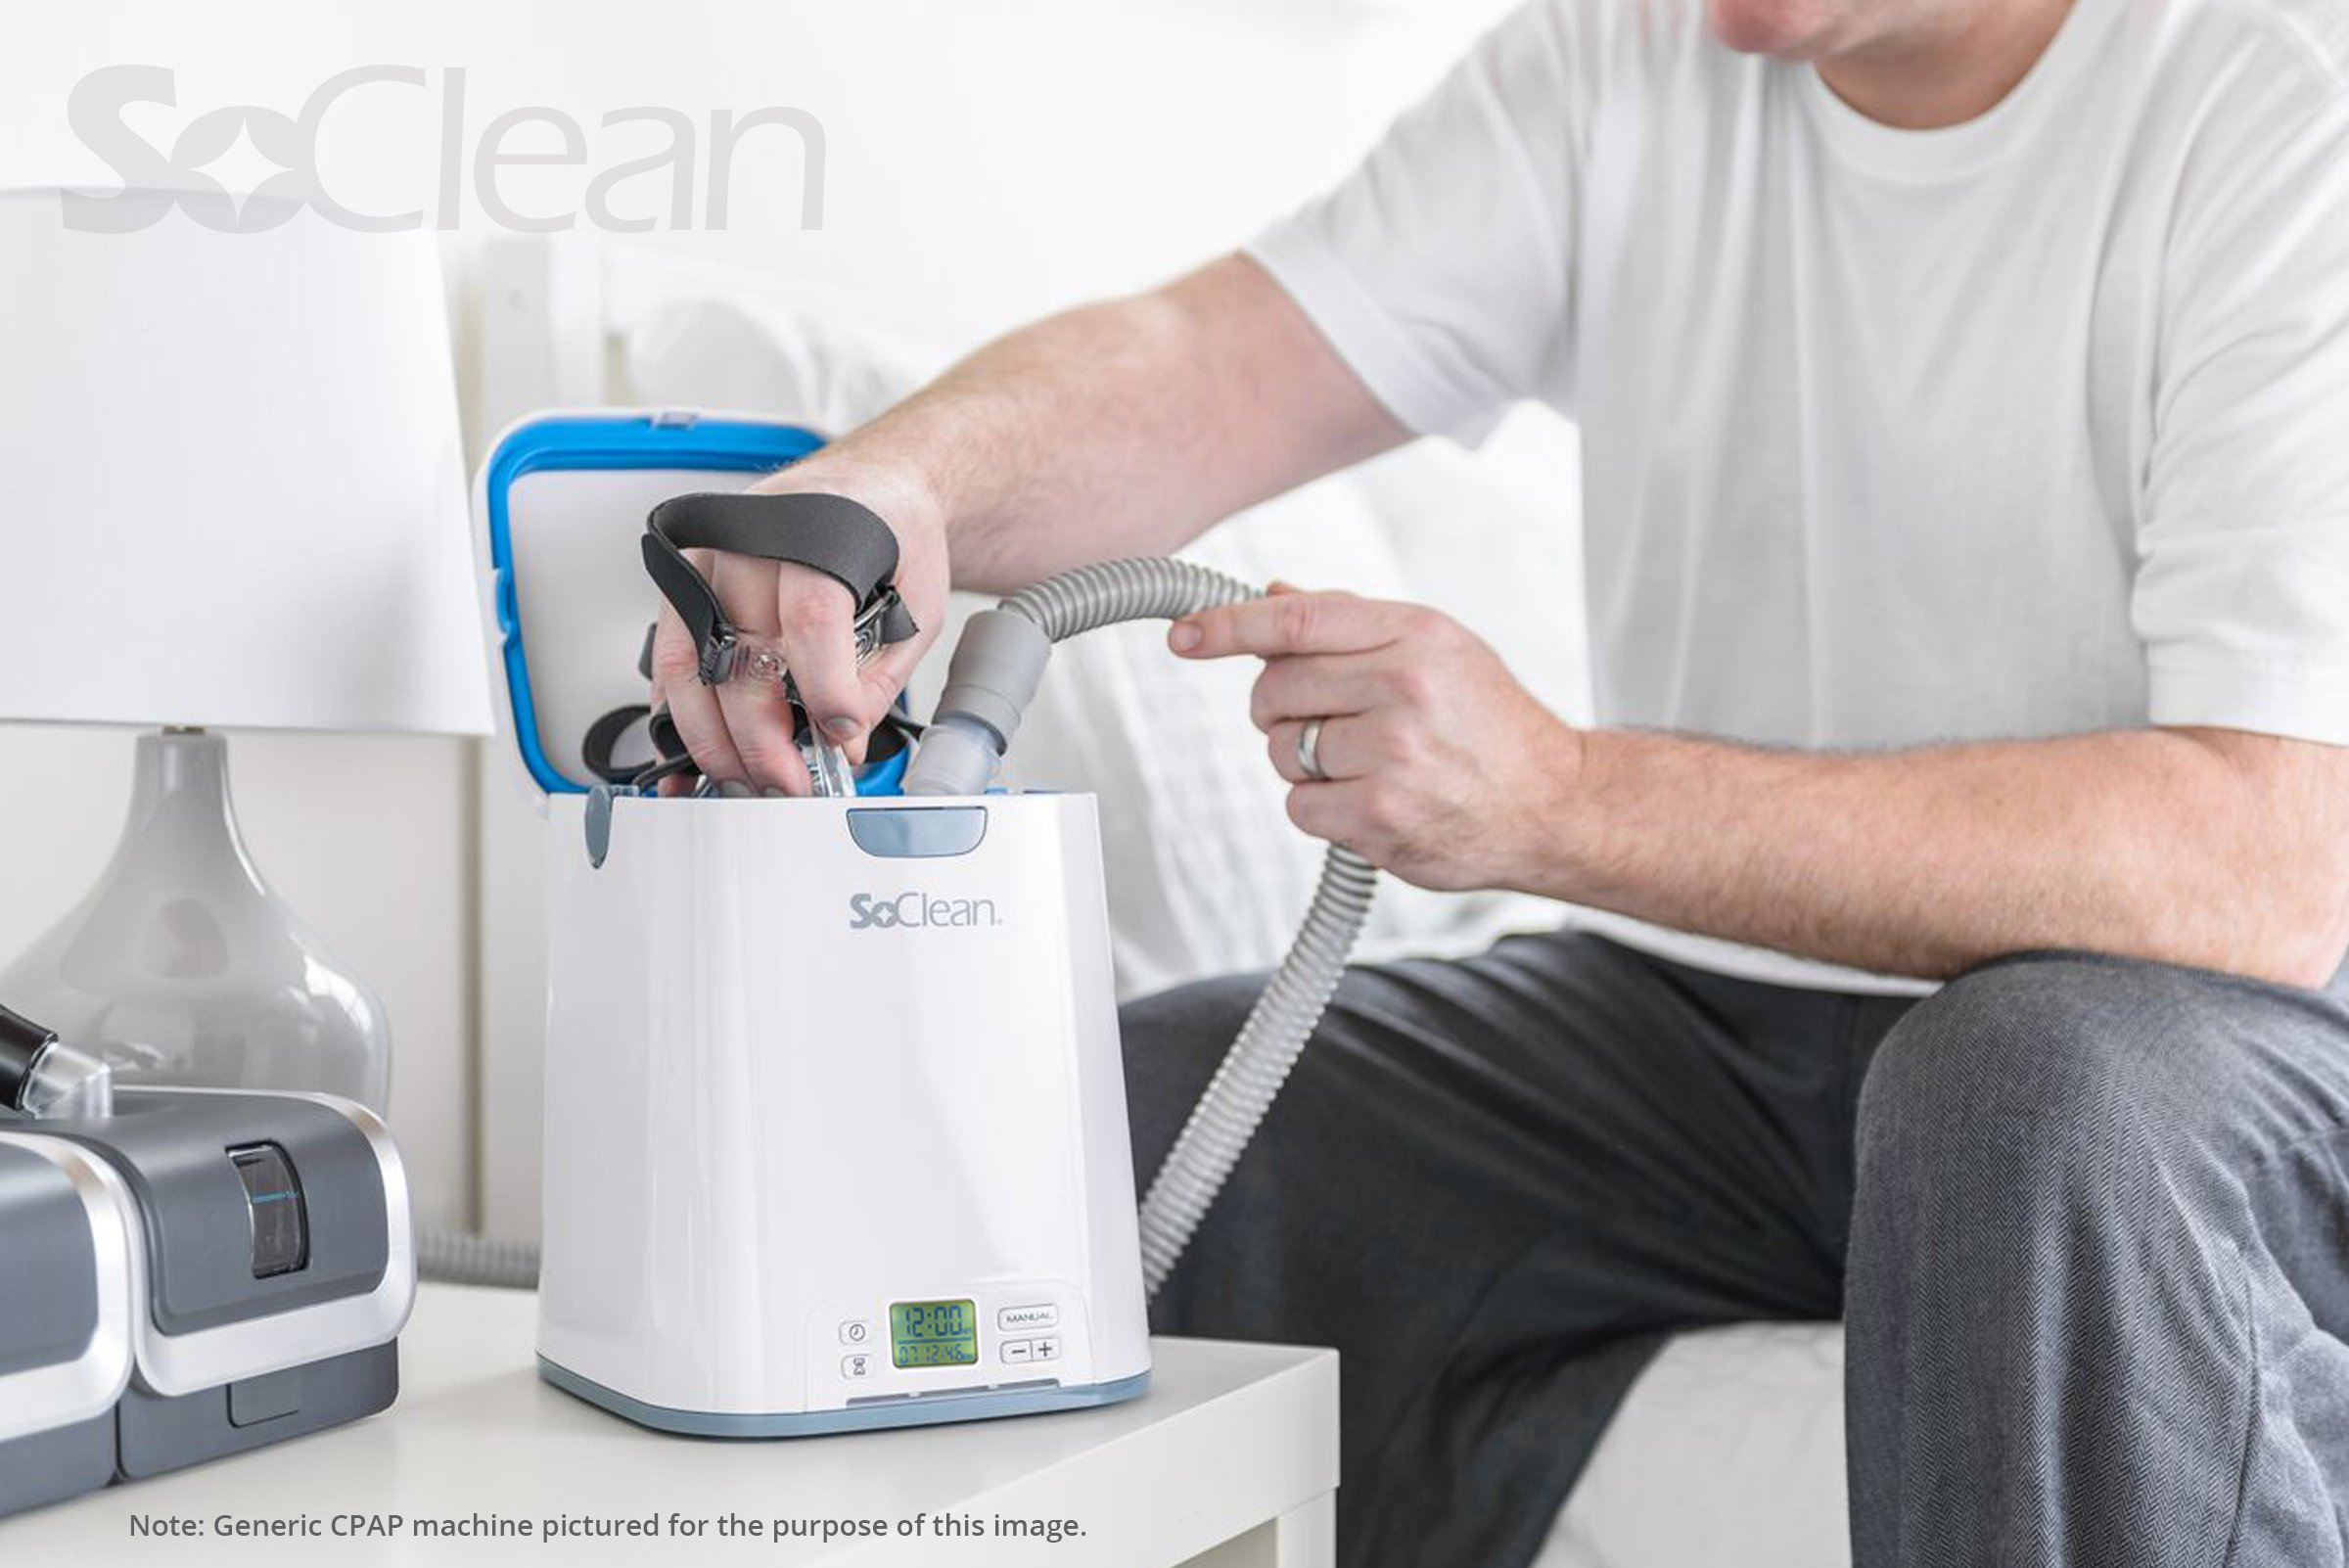 SoClean 2 + ResMed S9 Adapter (SoClean 2 CPAP Cleaner and Sanitizer Bundle with Free Adapter) by SoClean (Image #7)